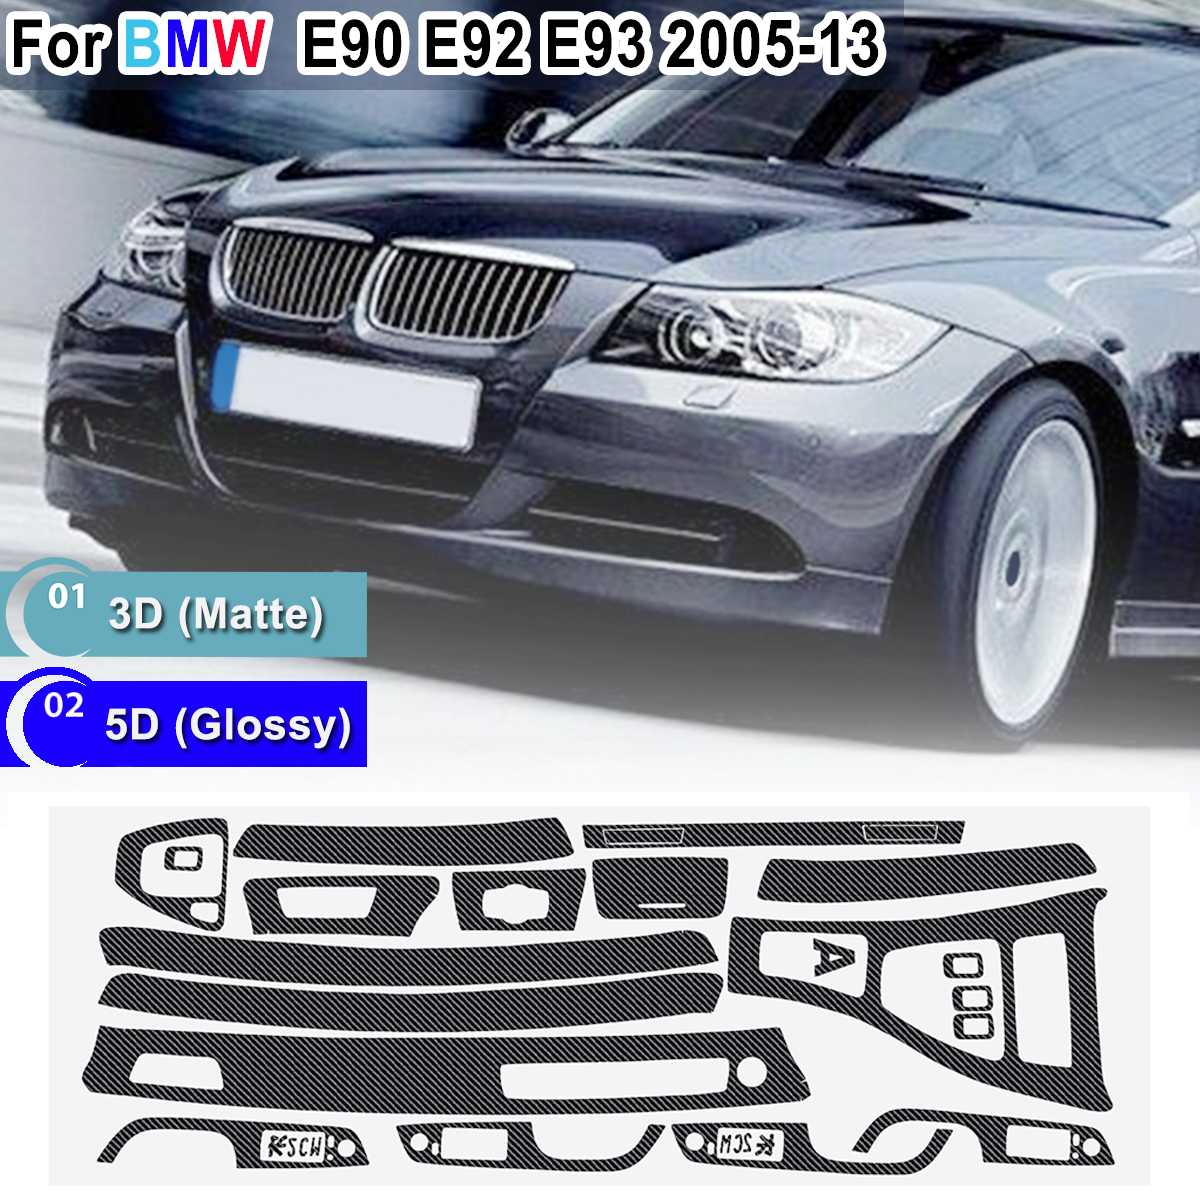 15pcs Only RHD 5D Glossy/ 3D Matte Carbon Fiber Style Sticker Vinyl Decal Trim For BMW E90 E92 E93 2005-2013